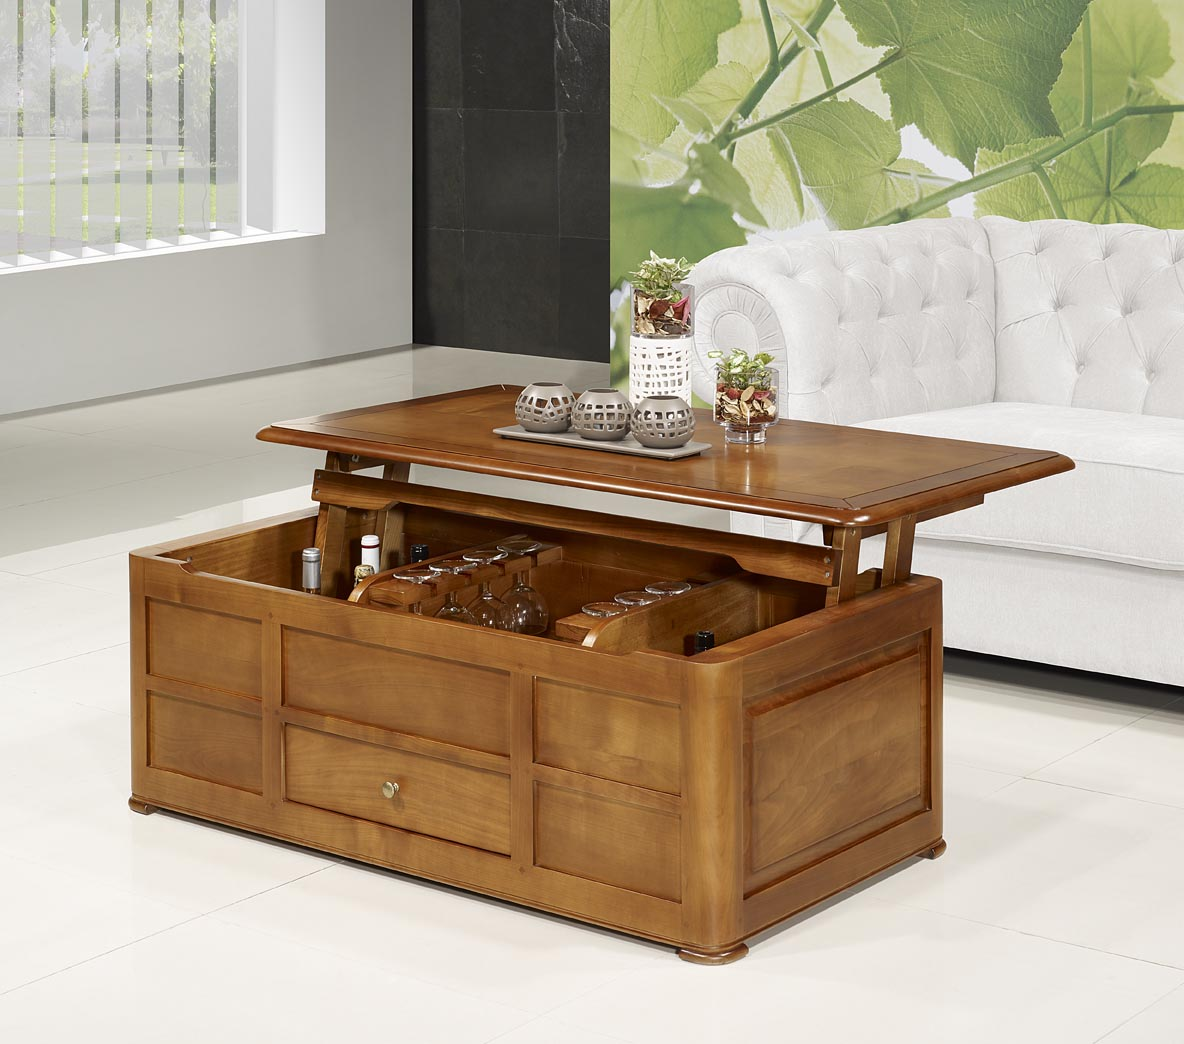 Table Basse Bar ine en Merisier de style Louis Philippe , meuble ...